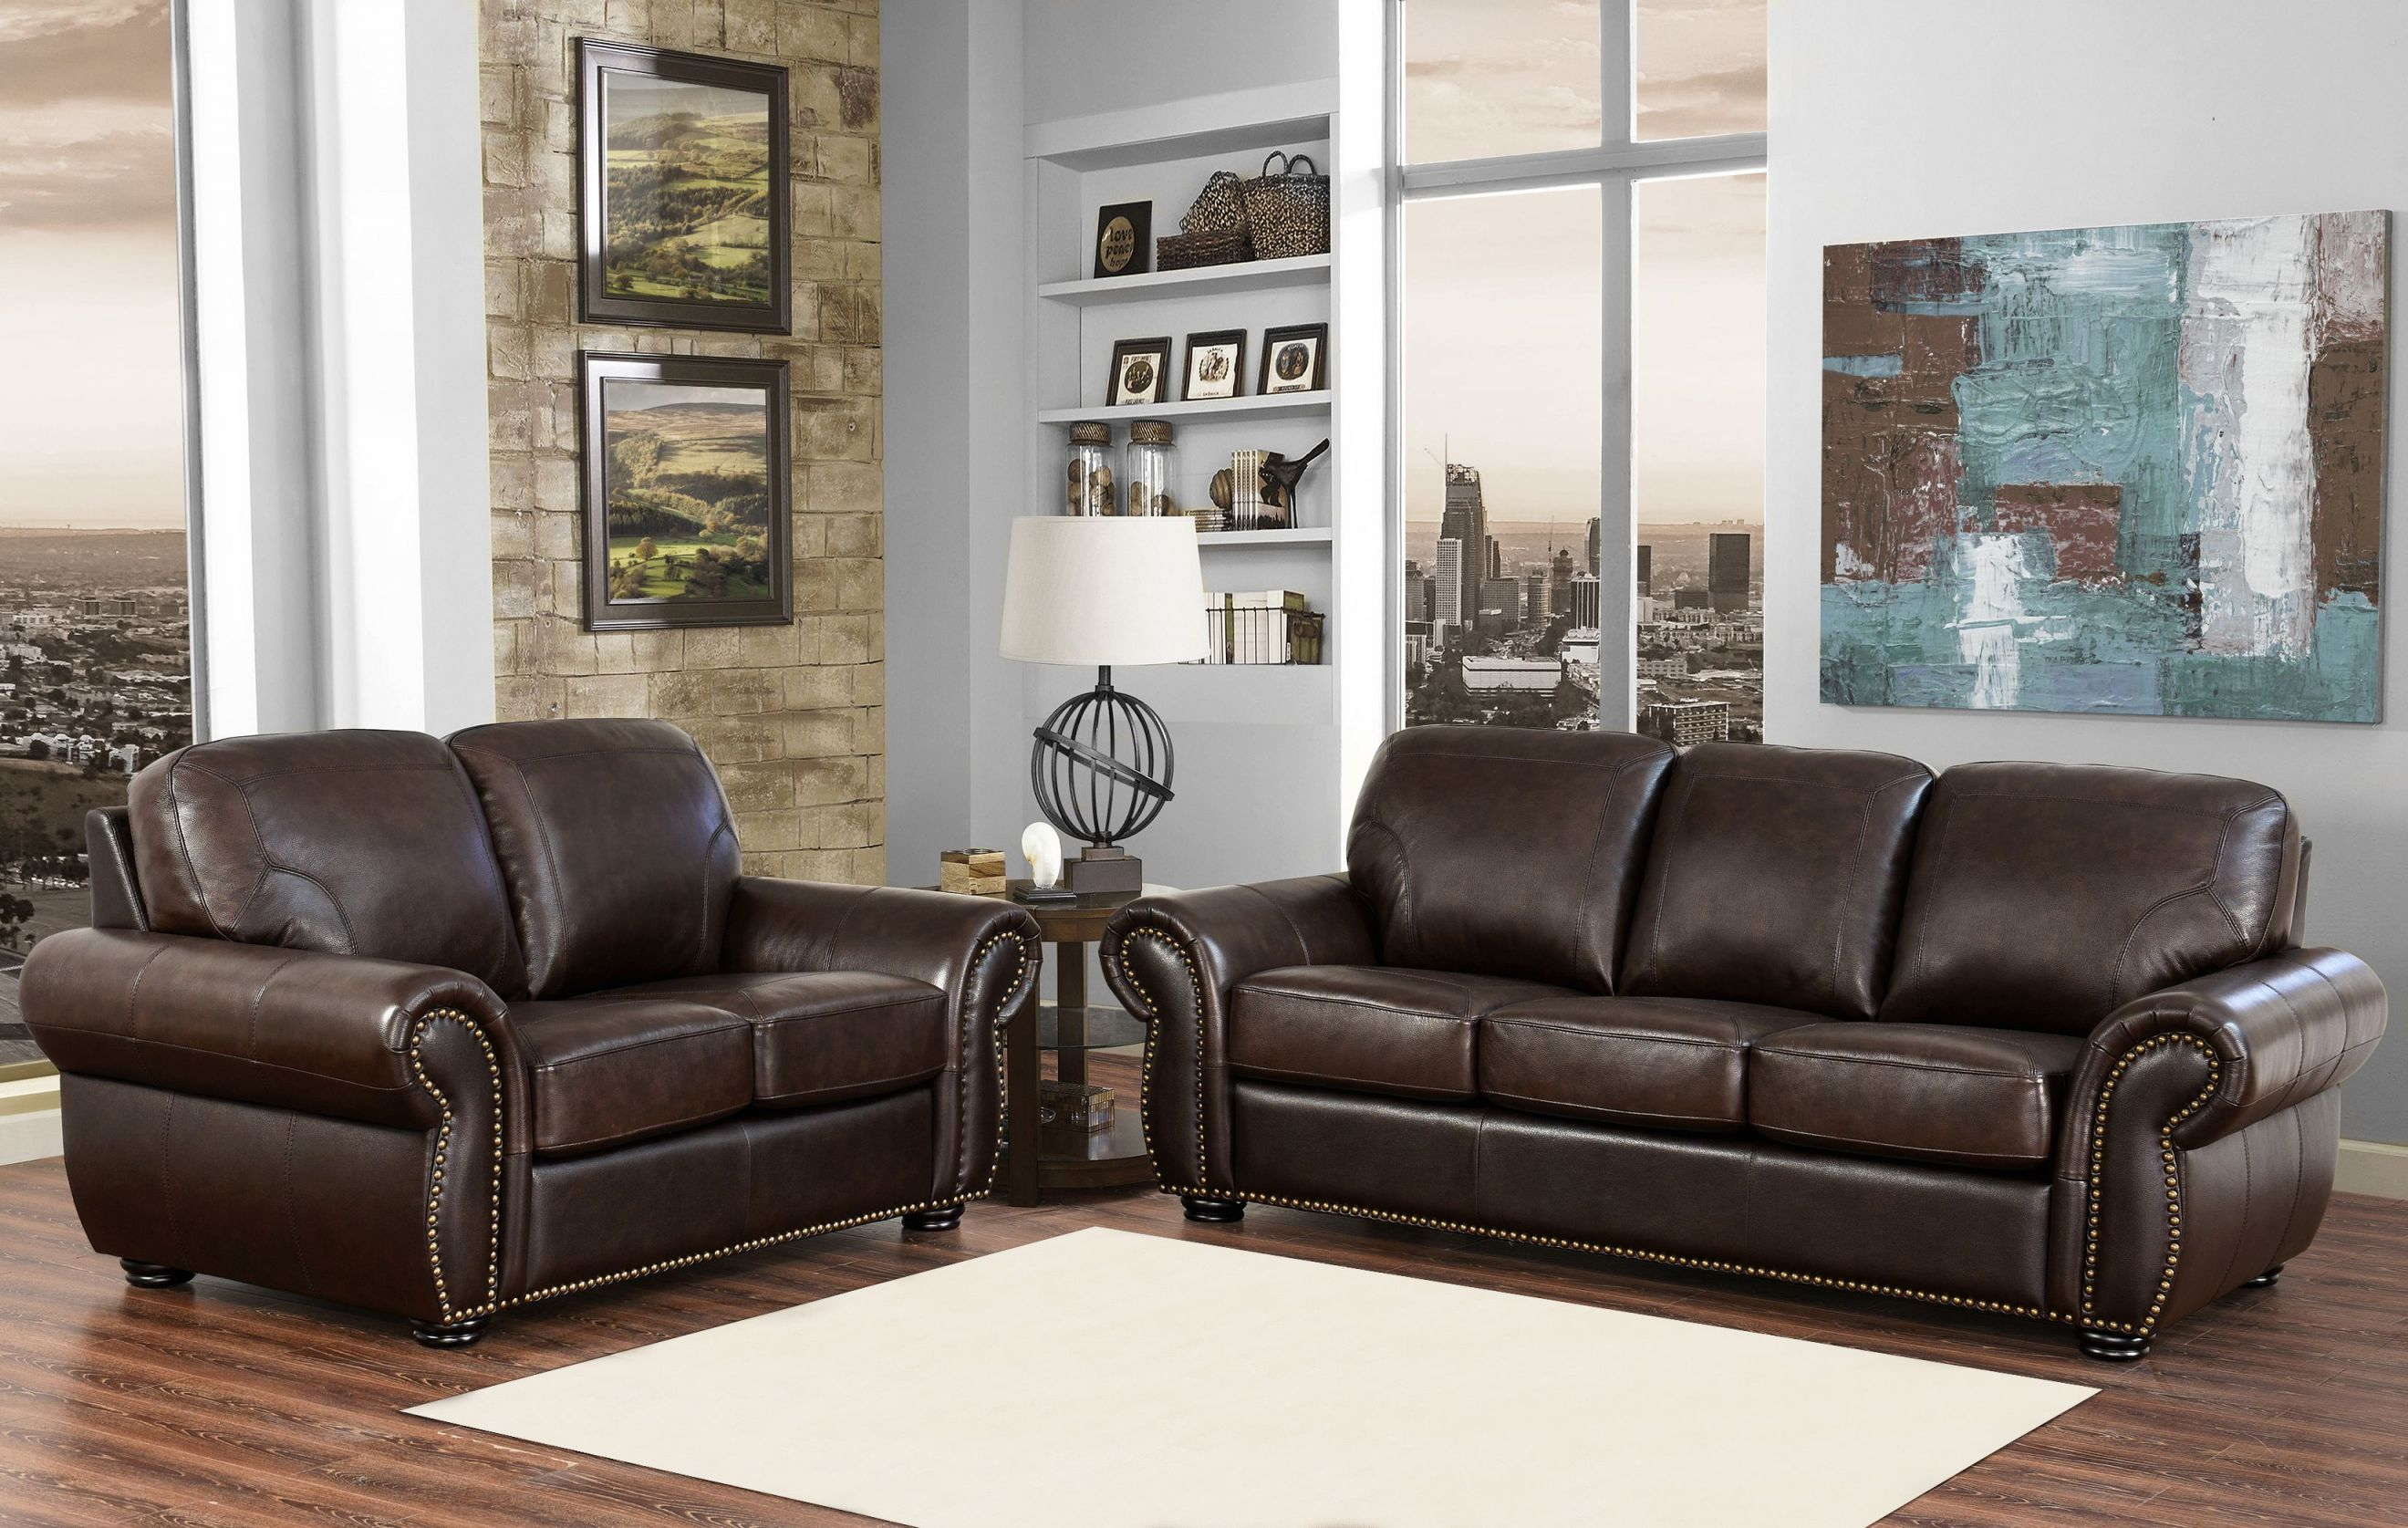 Breckenridge 2-Piece Top Grain Leather Living Room Set for Unique Living Room Sets